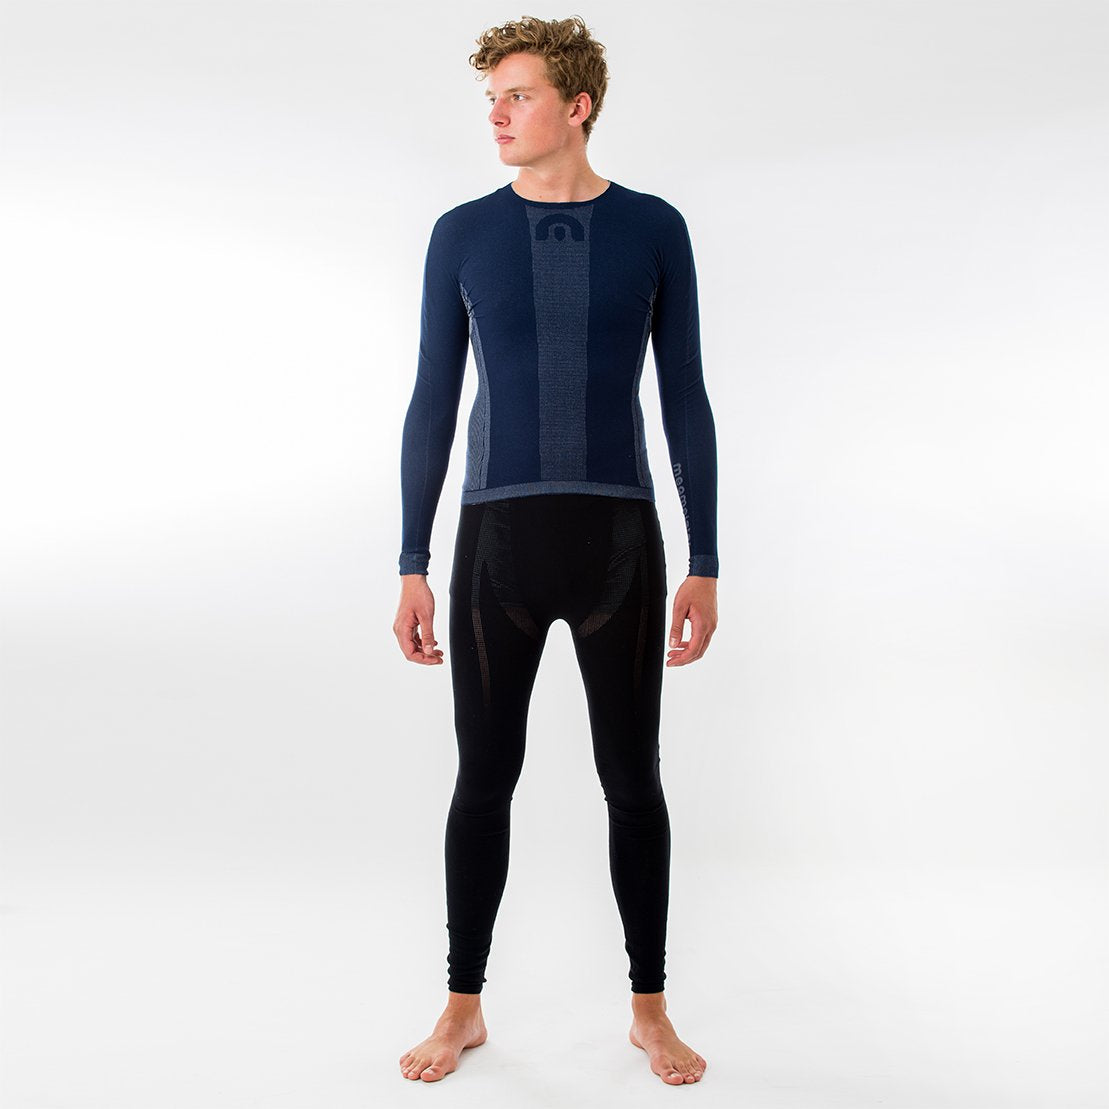 mens-drynamo-cycle-long-sleeve-base-layer-in-blue-full-body-shot